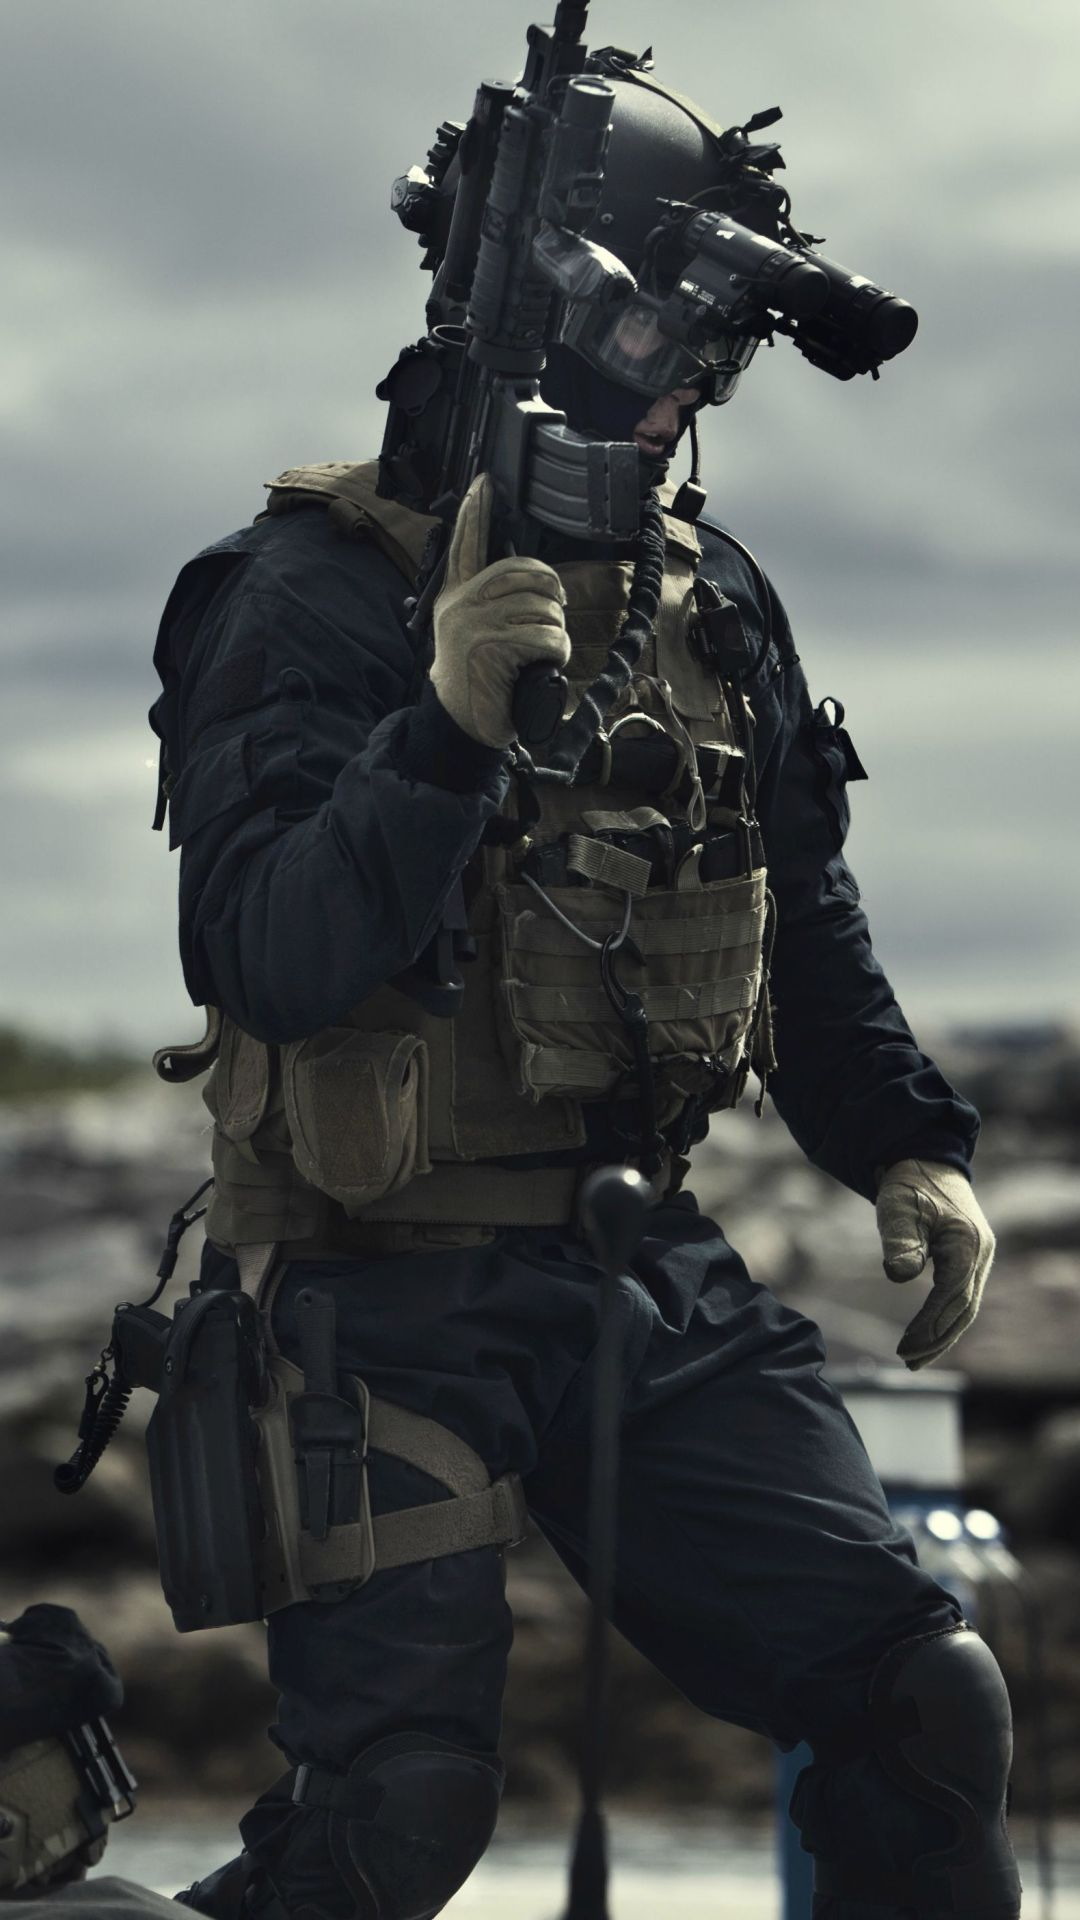 Military Soldier 1080x1920 Mobile Wallpaper Military Soldiers Military Wallpaper Army Wallpaper